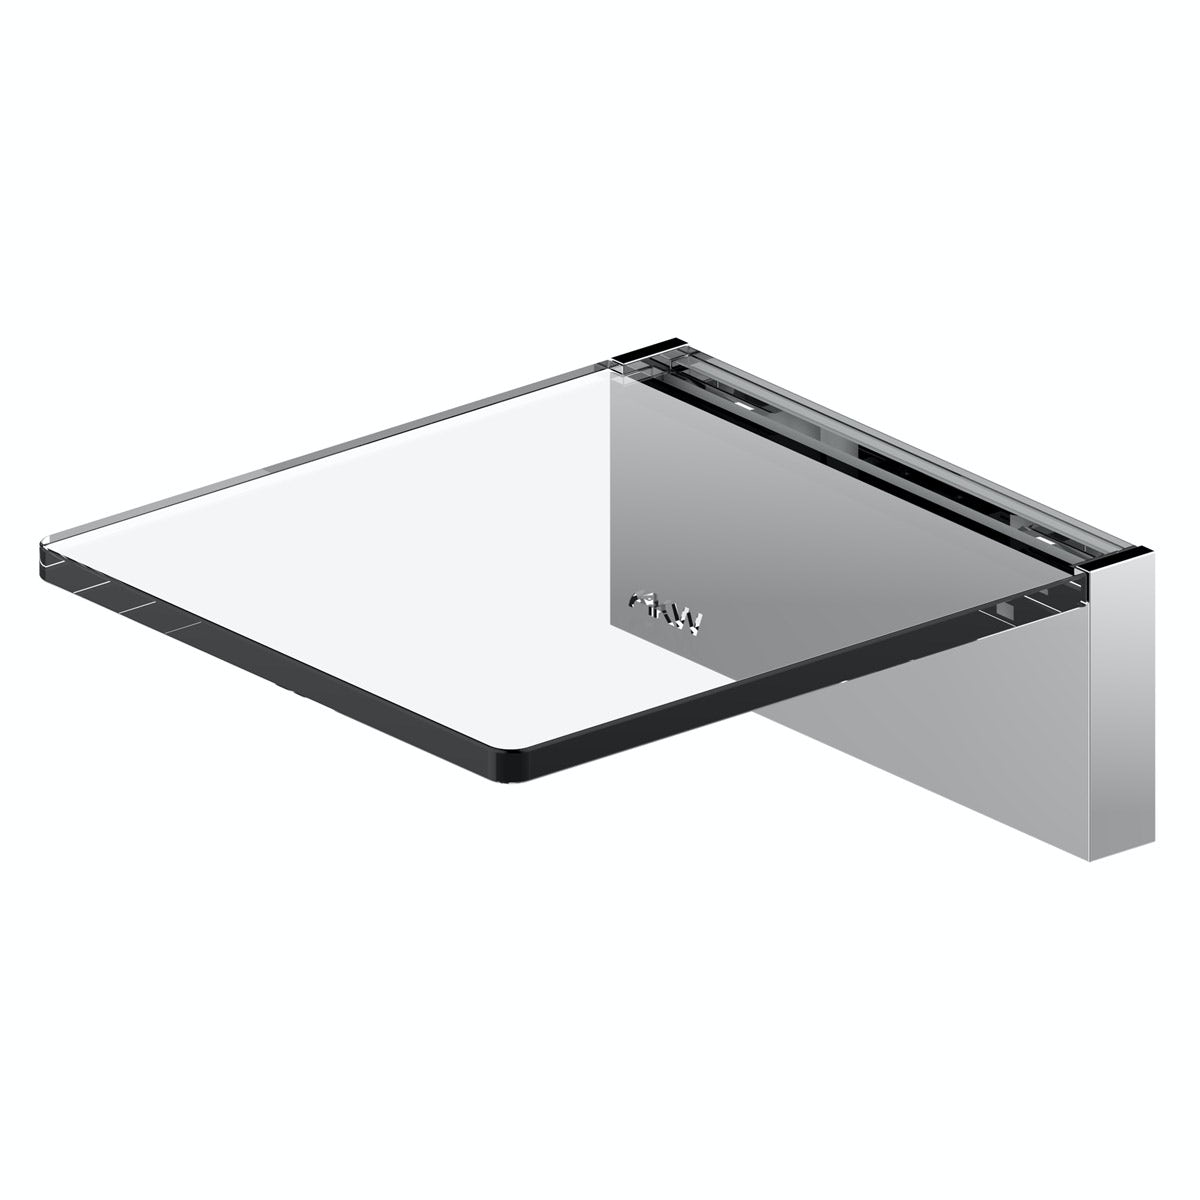 AKW Onyx small shelf chrome